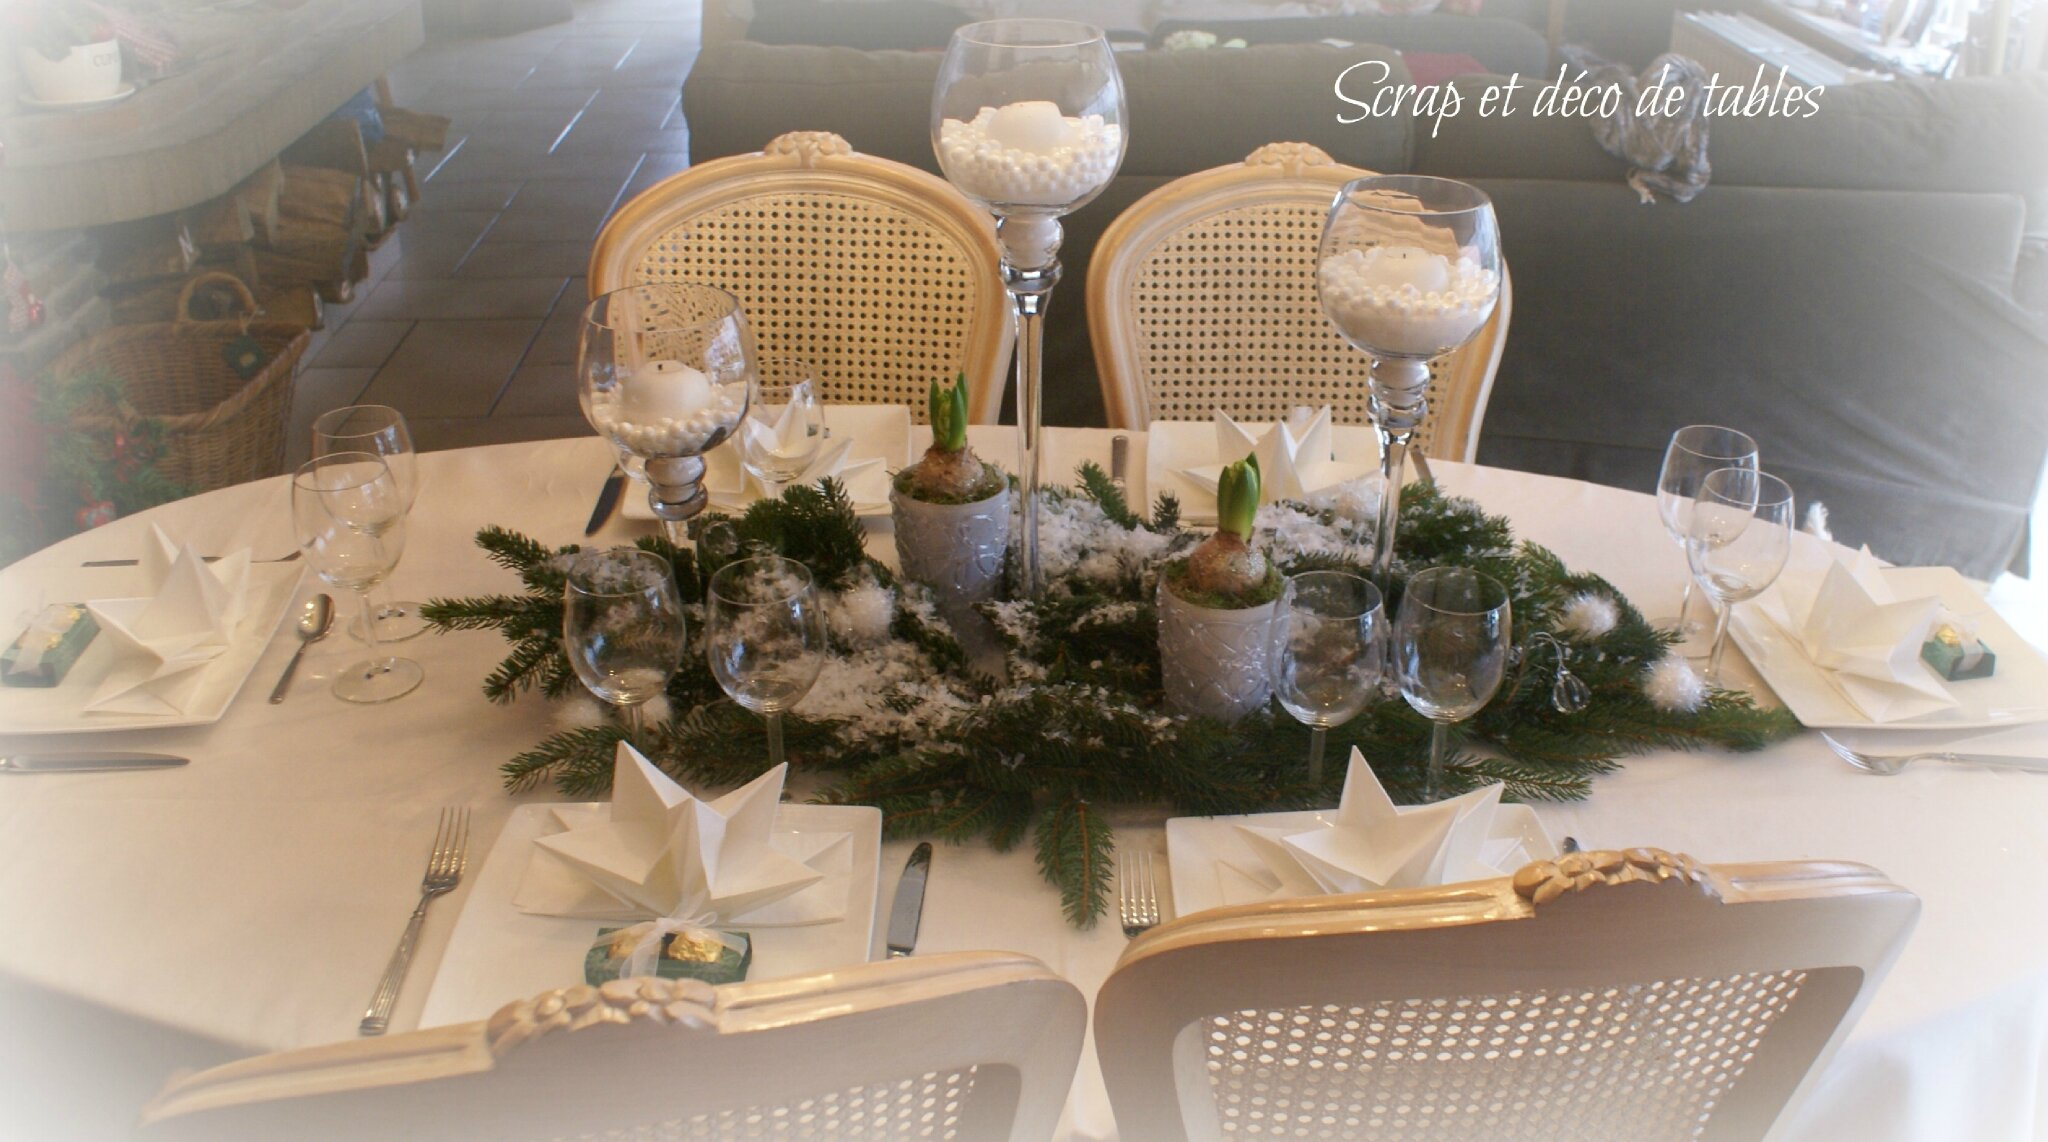 Deco table de no l en blanc scrap et d co de tables - Deco table de noel blanc ...